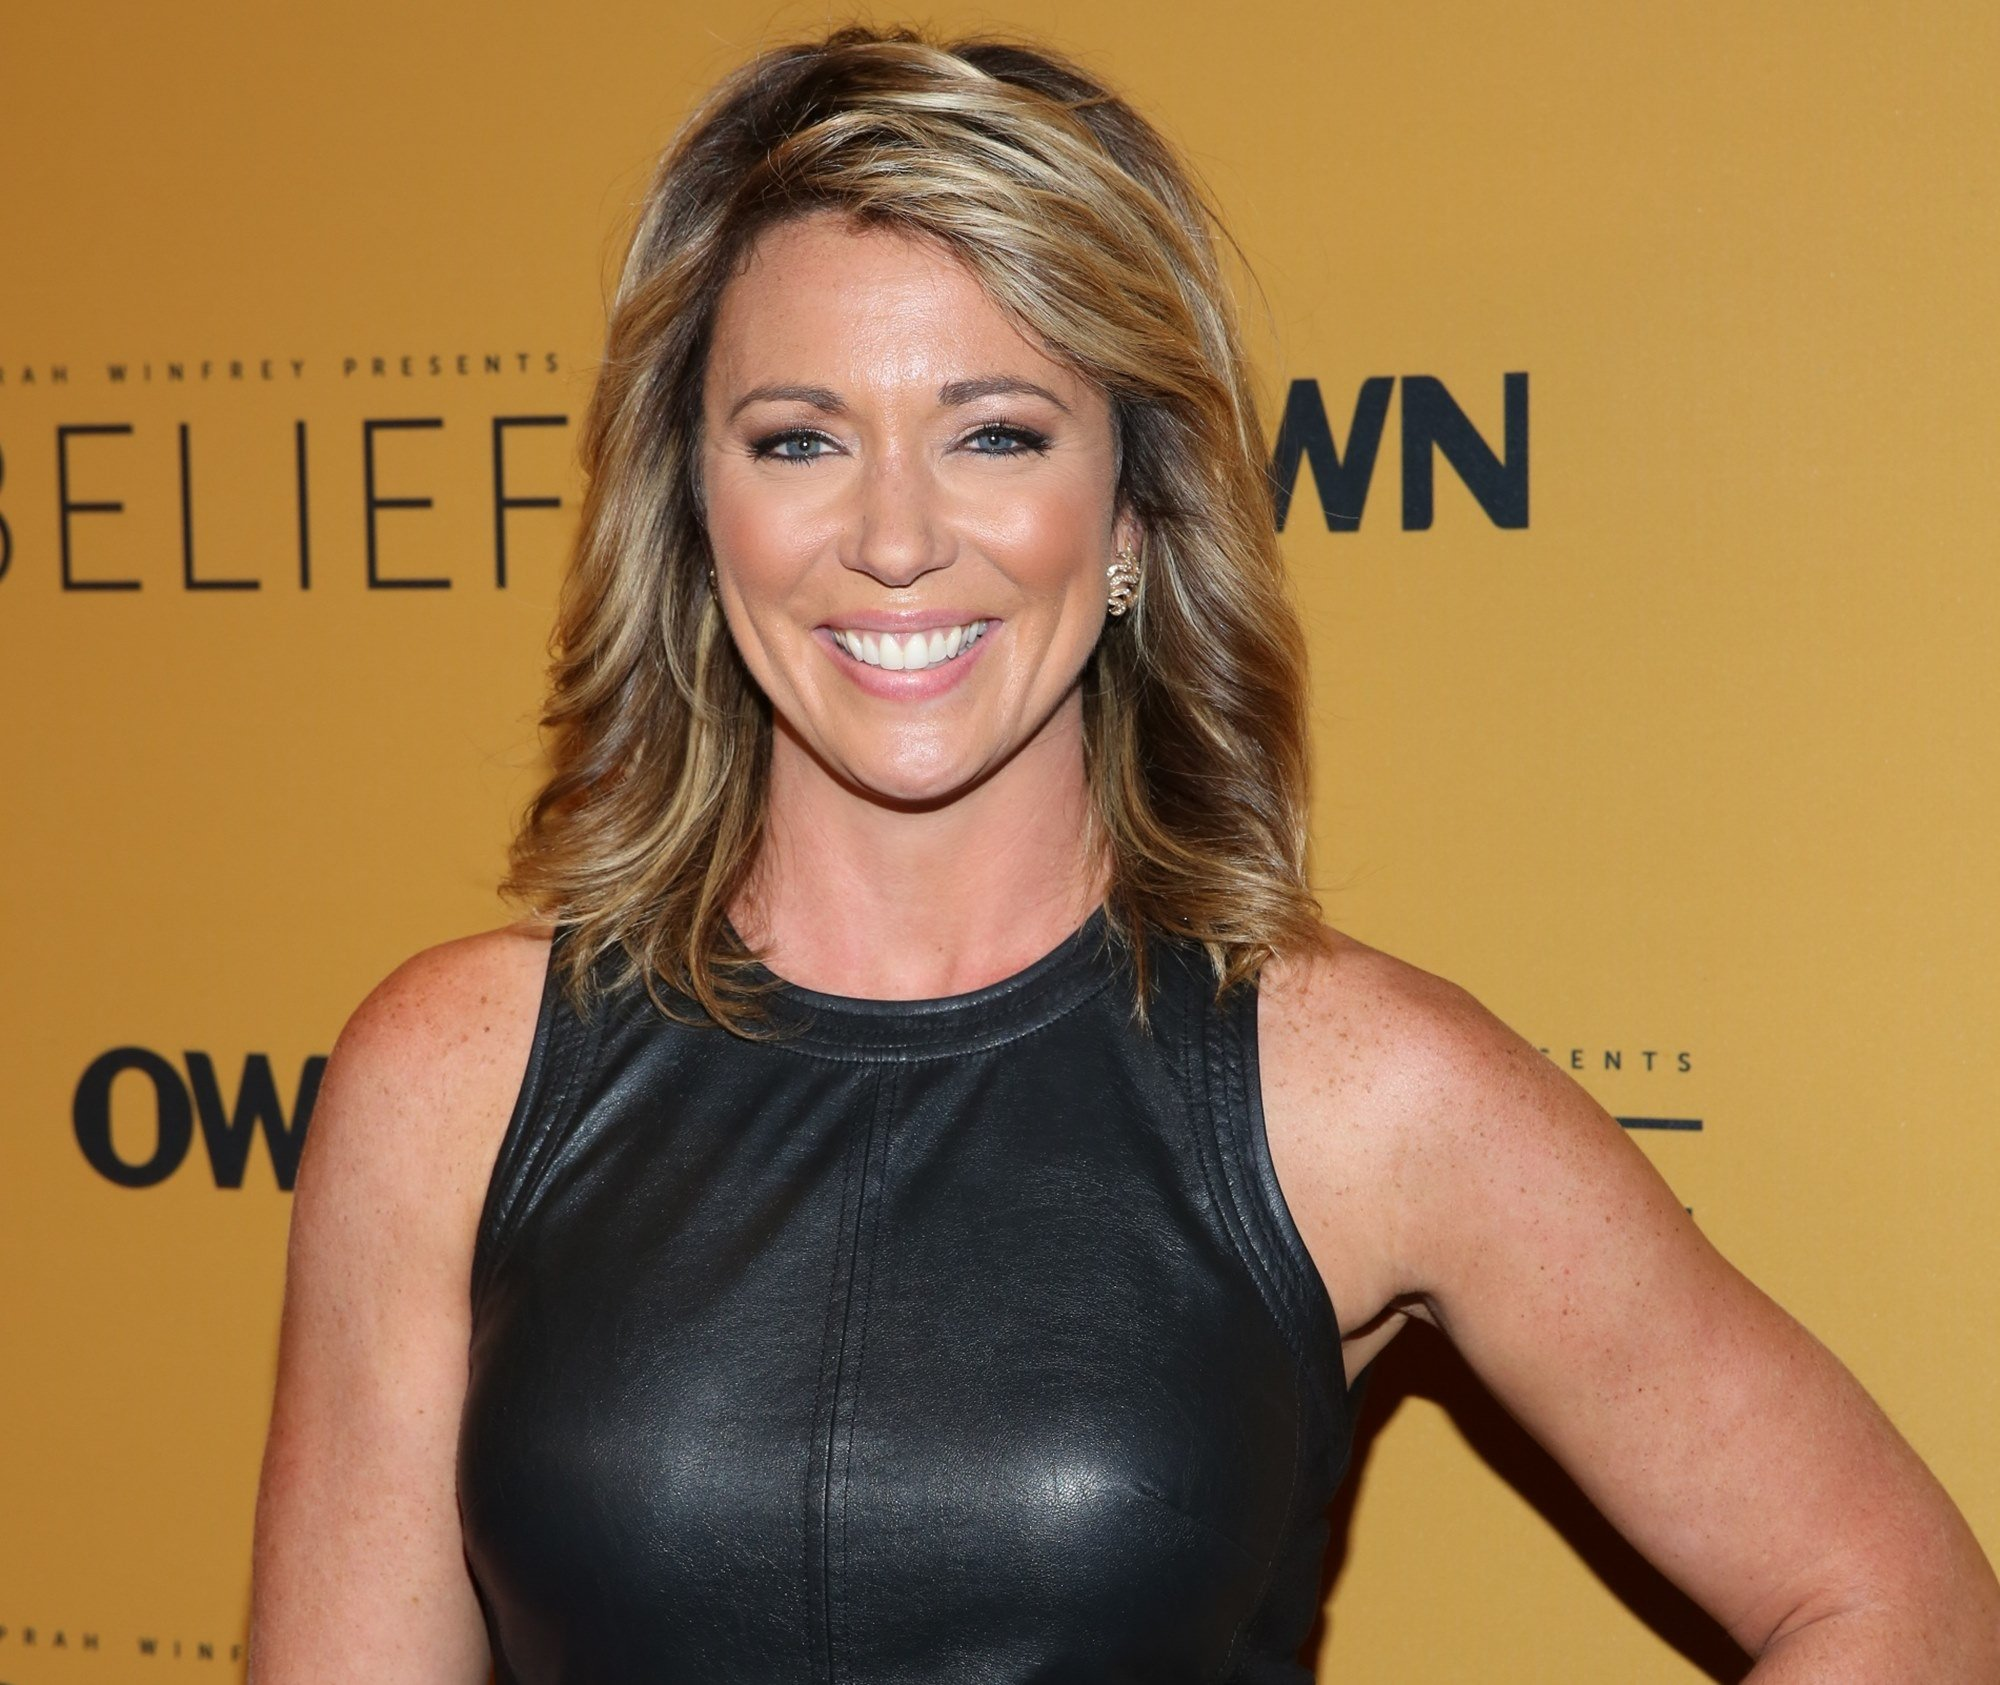 Brooke Baldwin Might Be Leaving CNN — Fans React To Cryptic Message About Jake Tapper Replacing Her Until After The Election